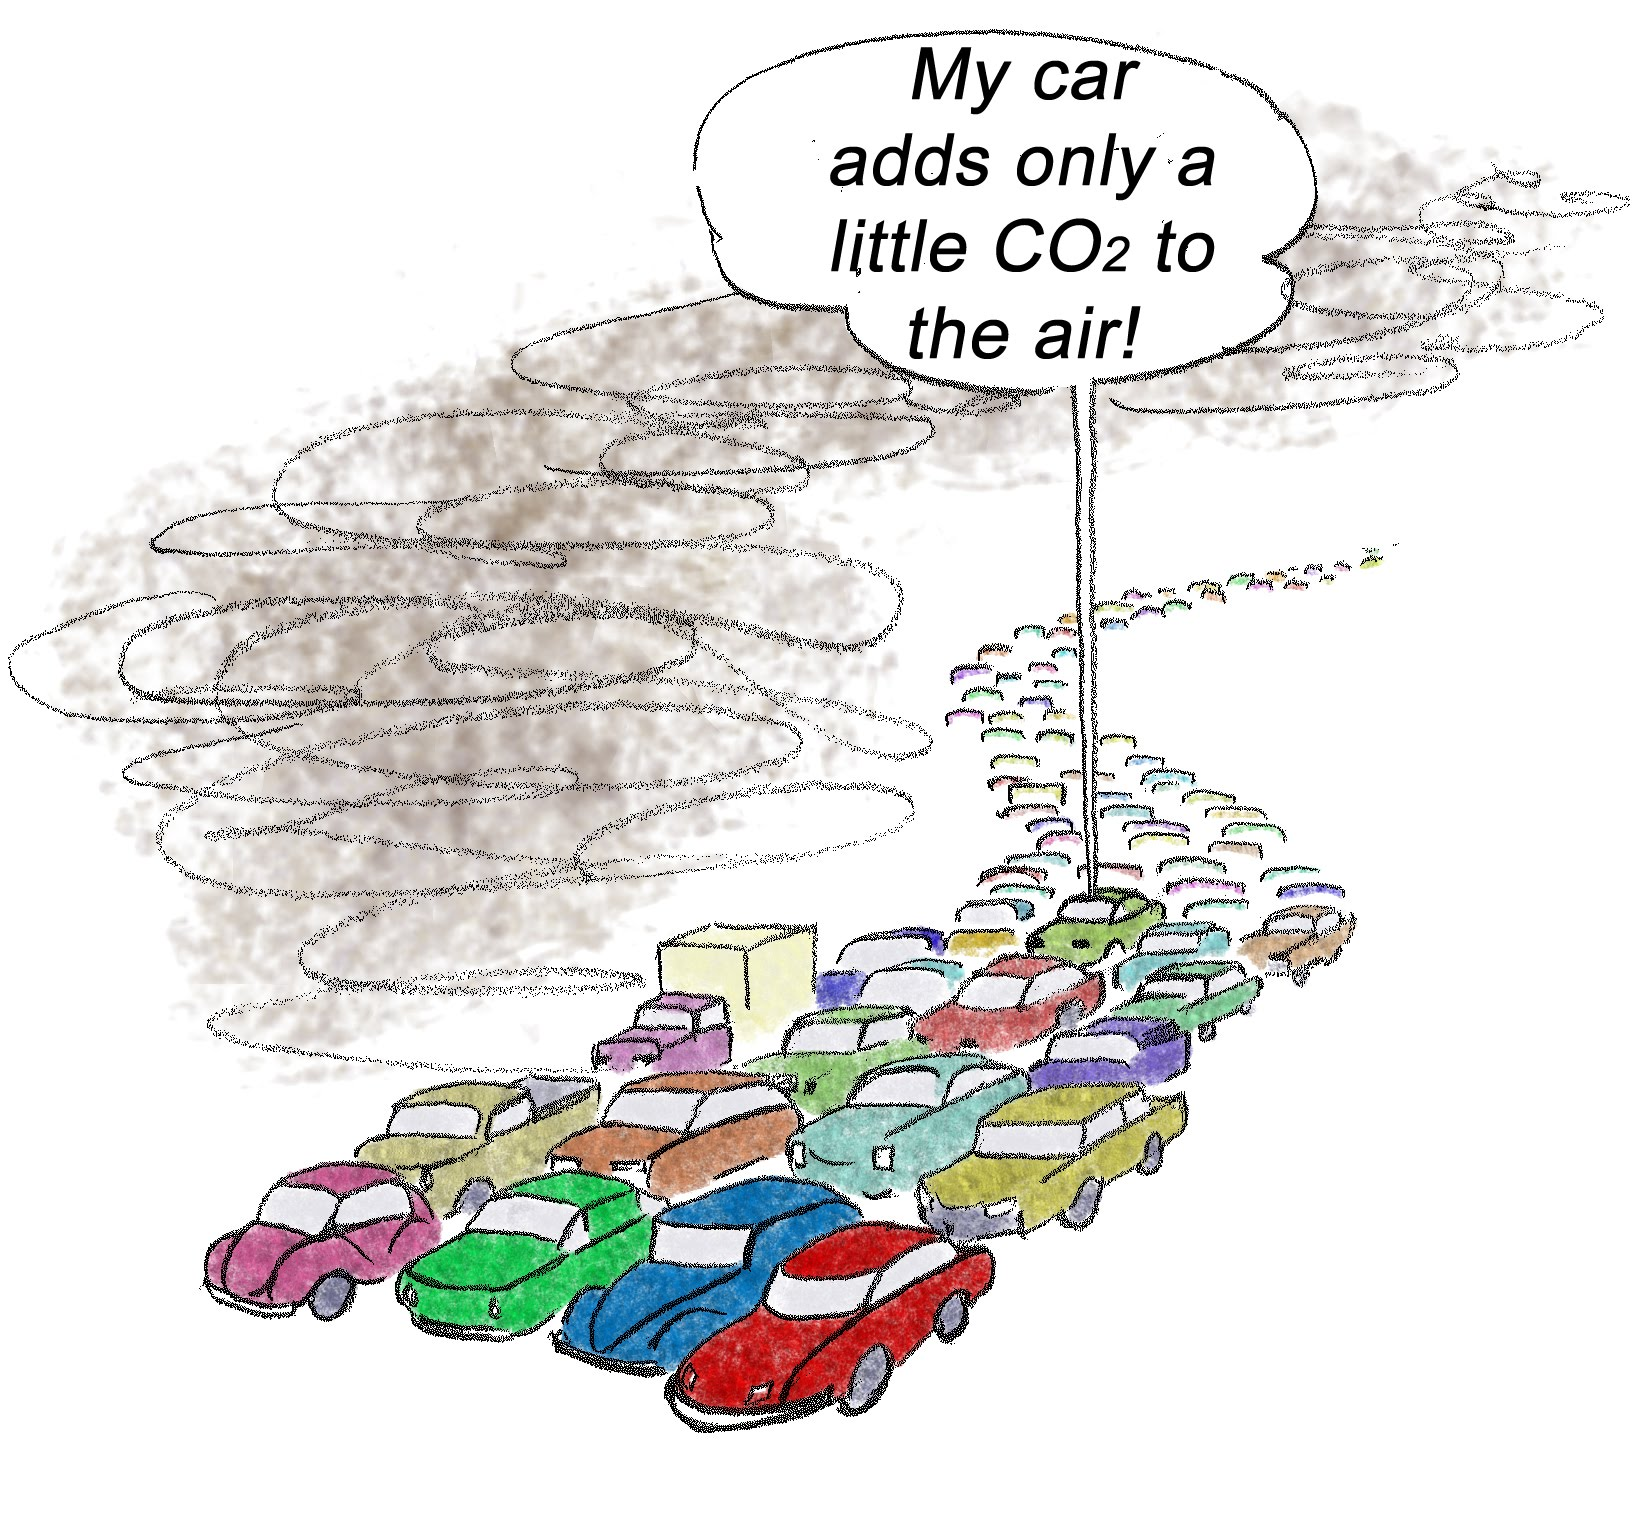 Cartoon with cars on freeway and balloon--my car adds only a little CO2 to the air